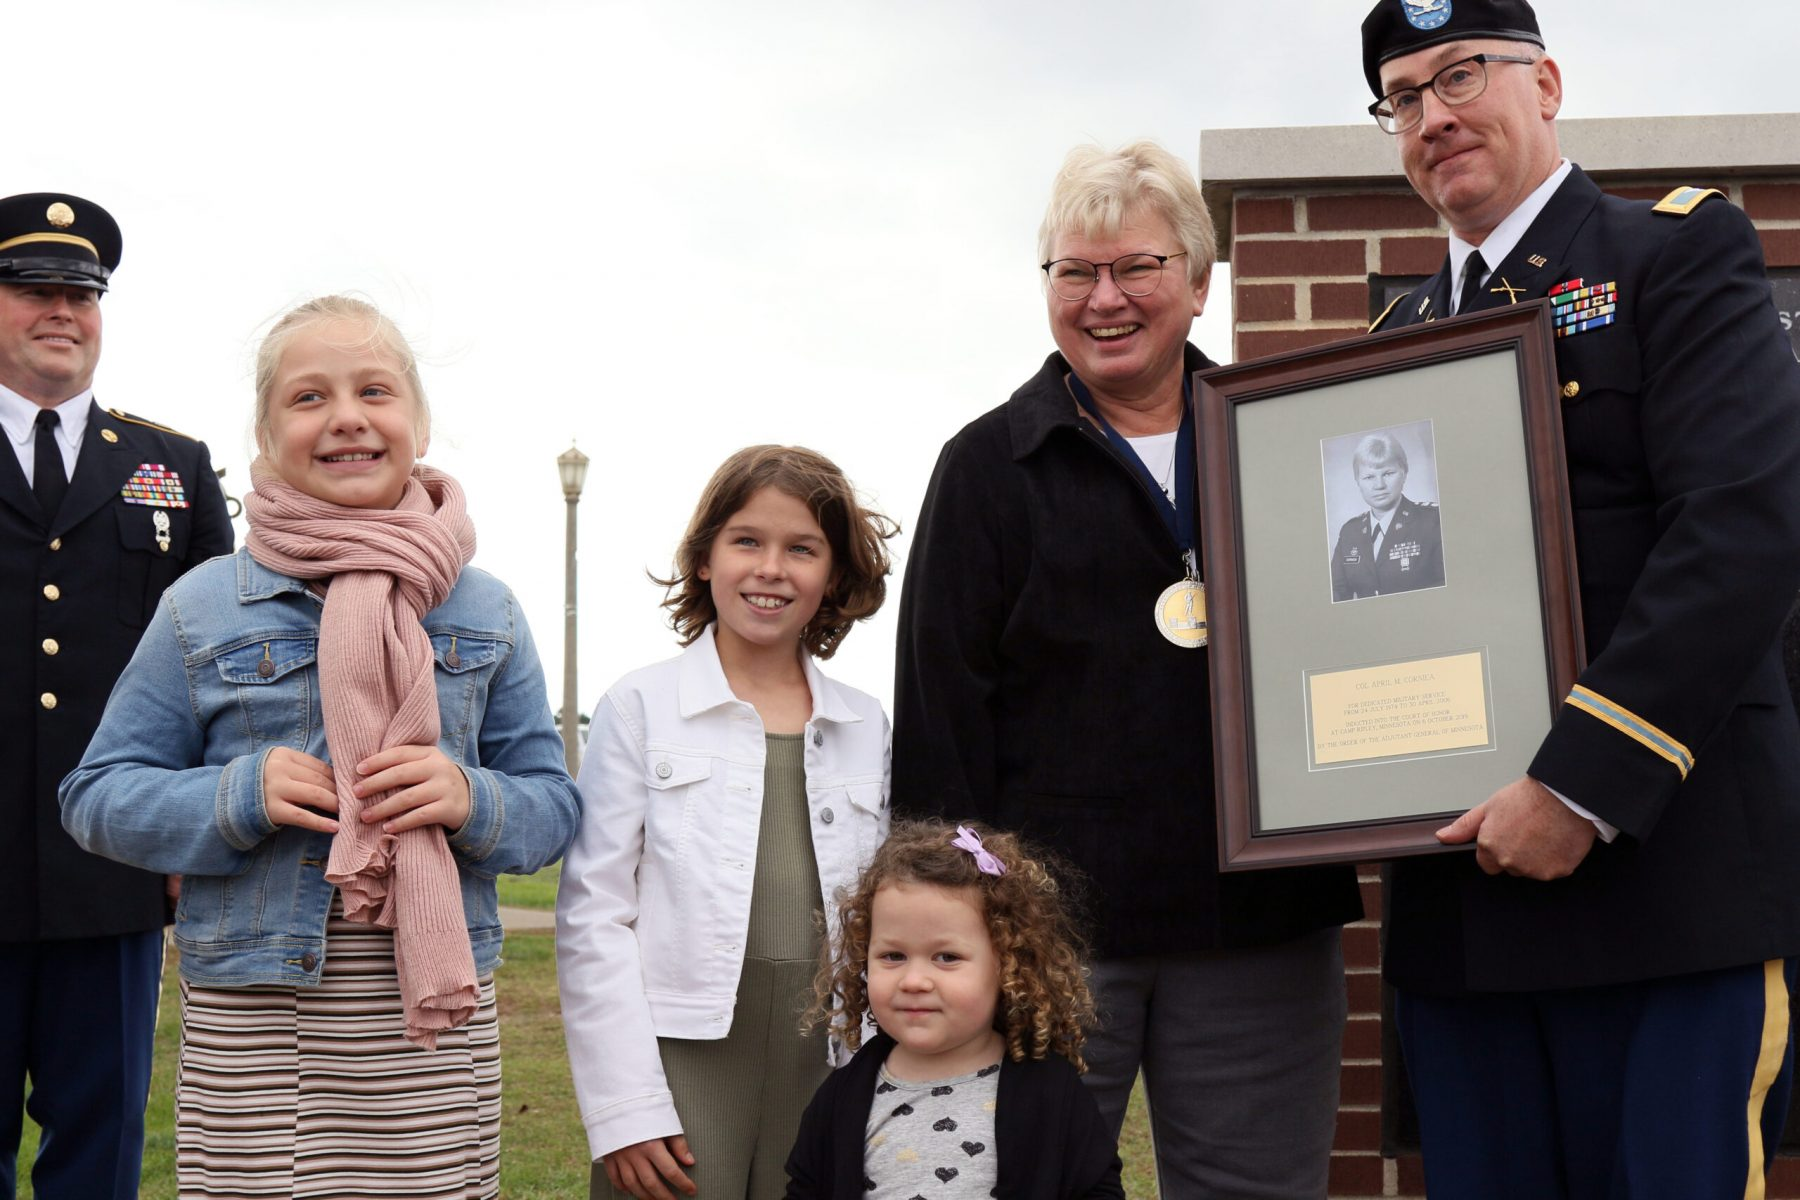 Colonel (Ret.) April M. Corniea poses with her family and plaque during the unveiling after the Court Of Honor Induction Ceremony on Camp Ripley on October 6th 2019.